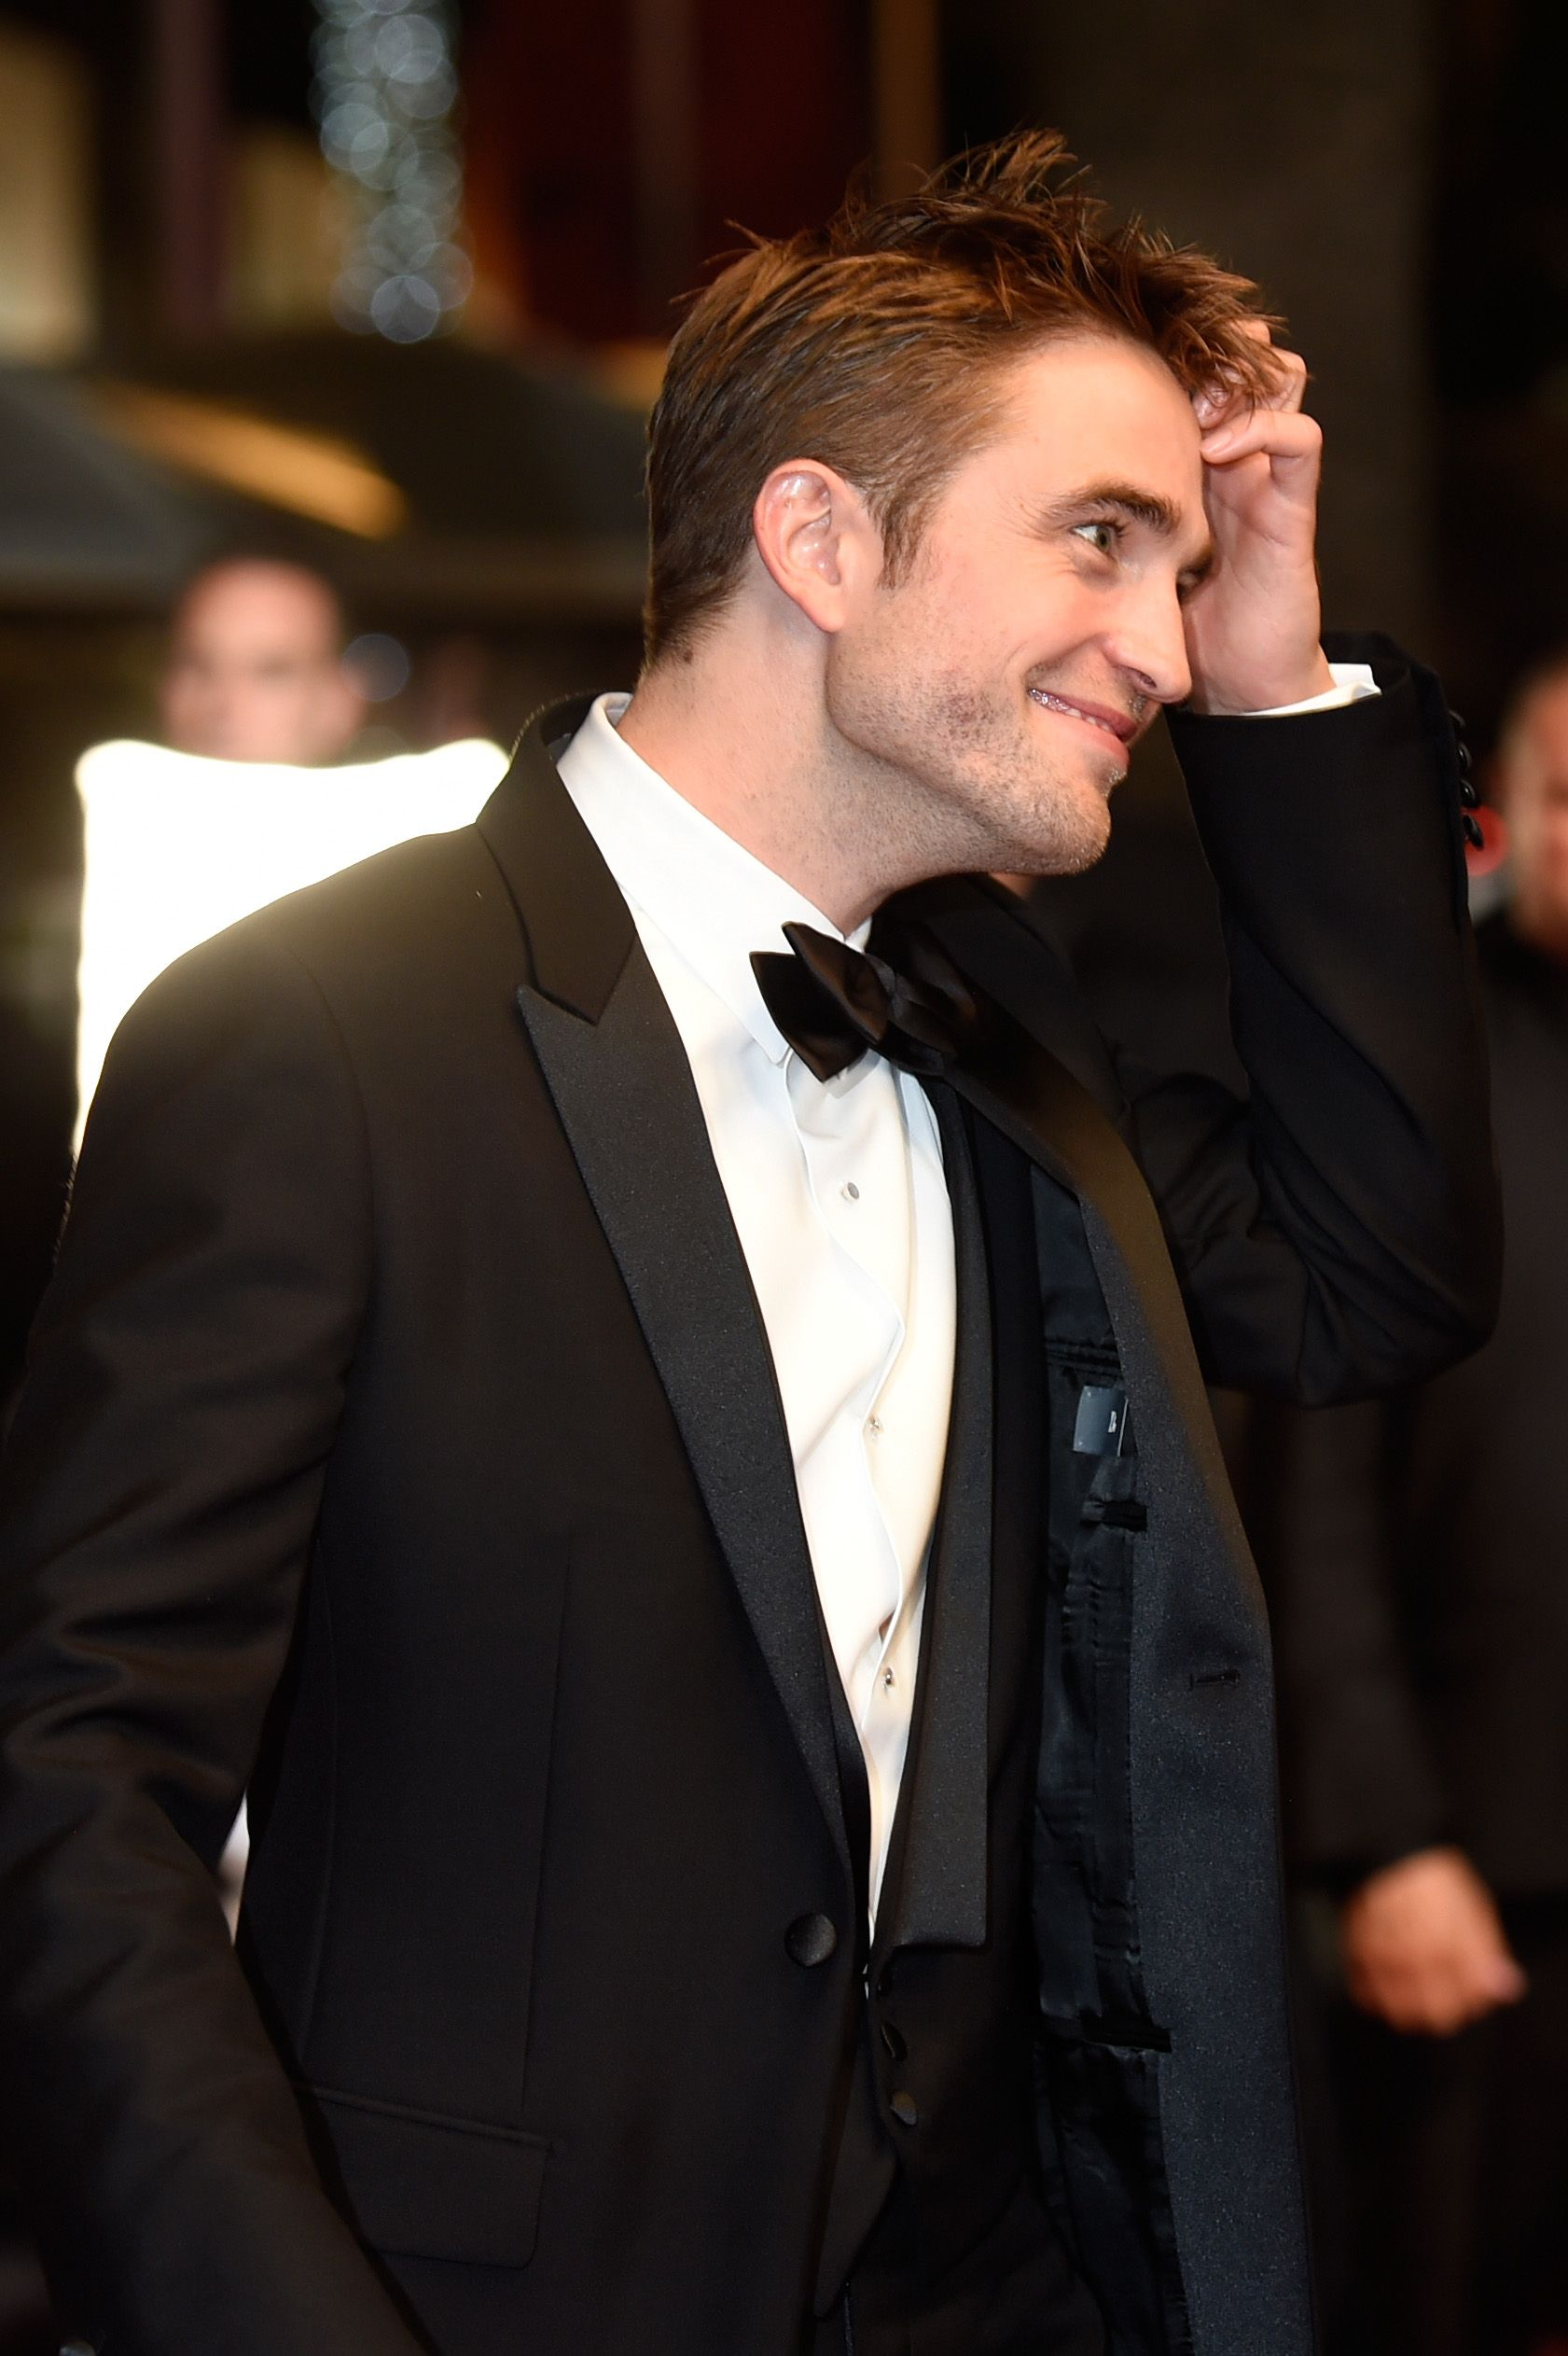 More_Good_Time_Cannes_Red_Carpet_With_Robert_Pattinson08